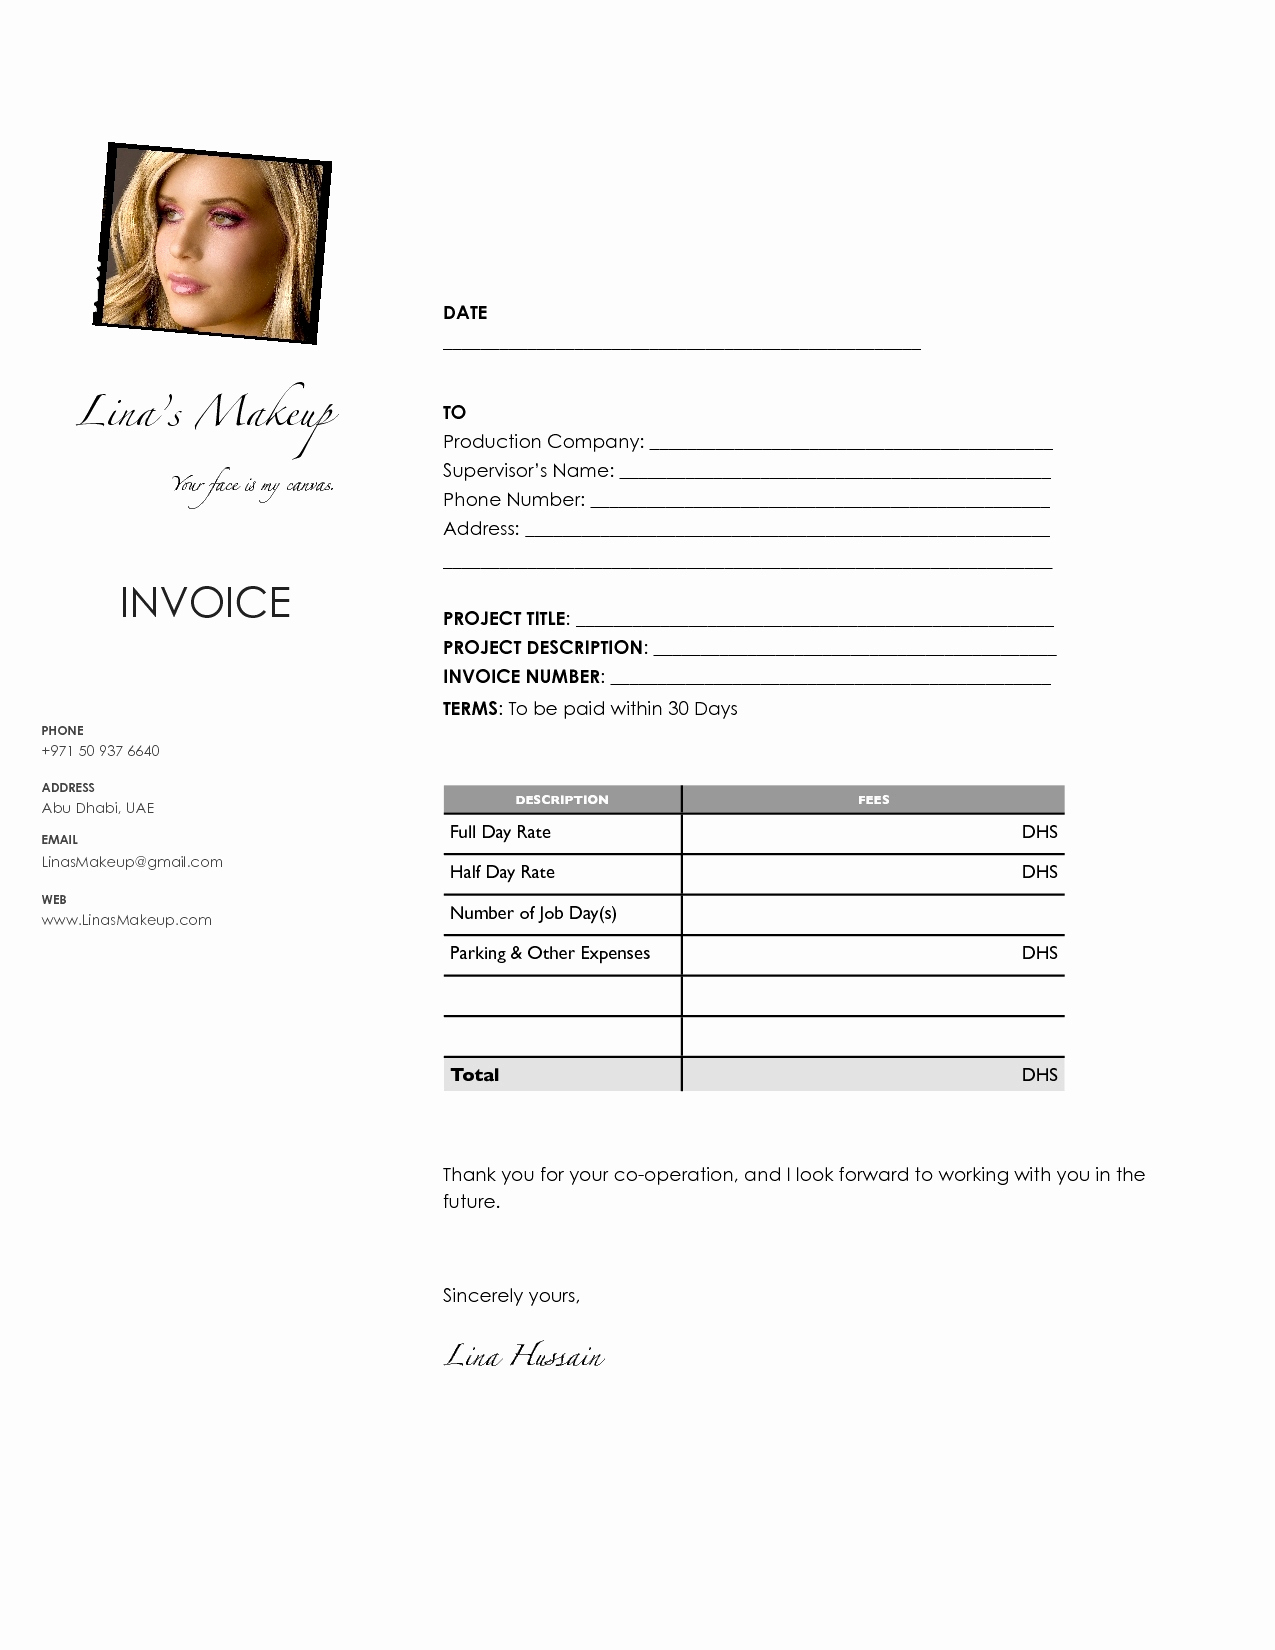 Makeup Invoice Template New Artist Invoice Template Elegant Makeup To Artist Invoice Samples